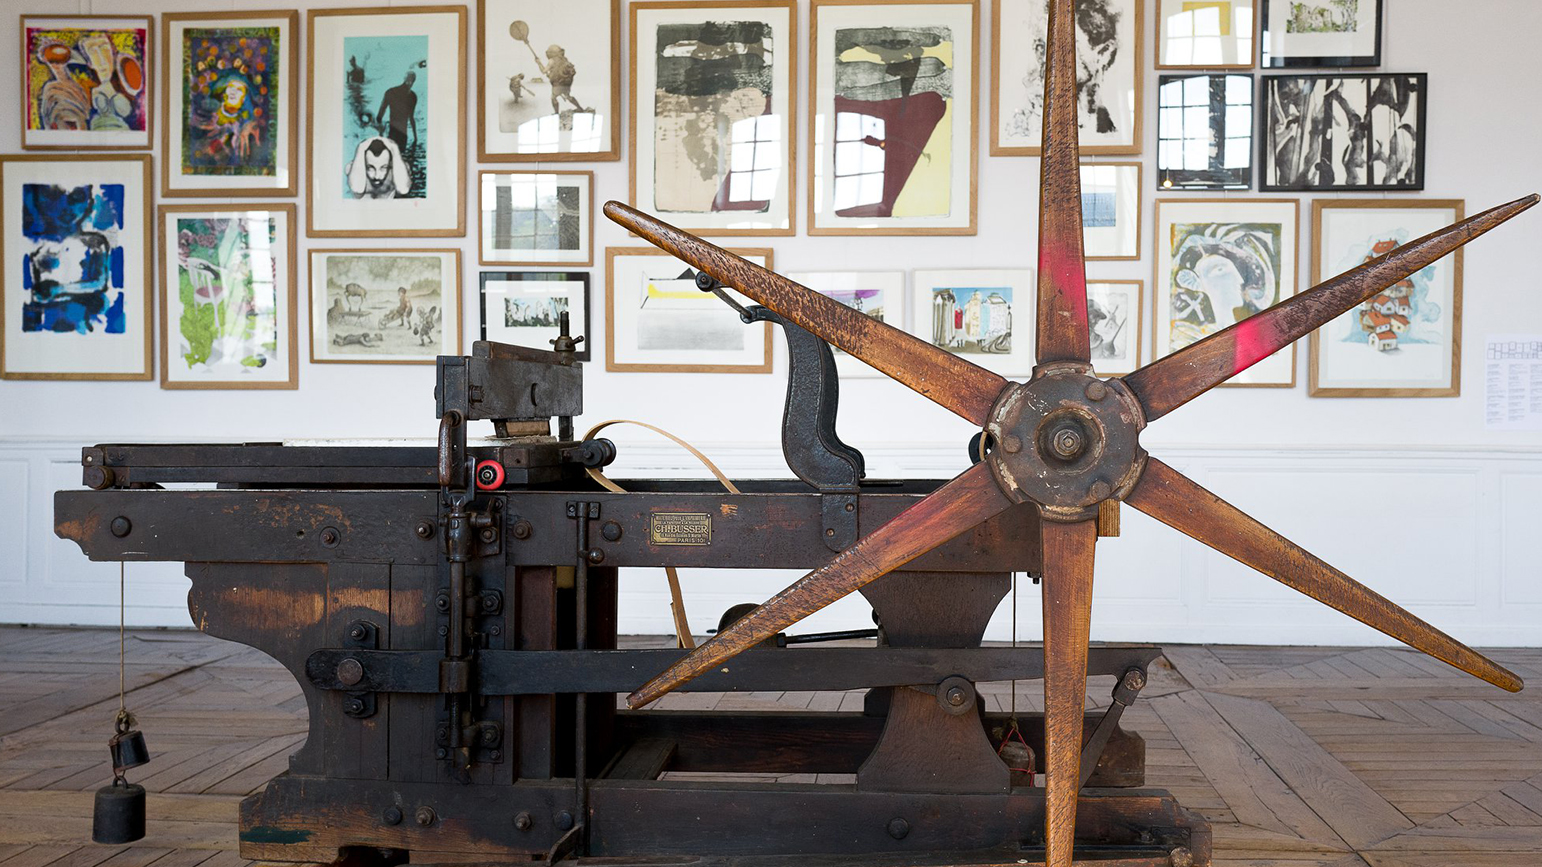 Photograph of a manual printing press with framed prints hung salon-style behind it.